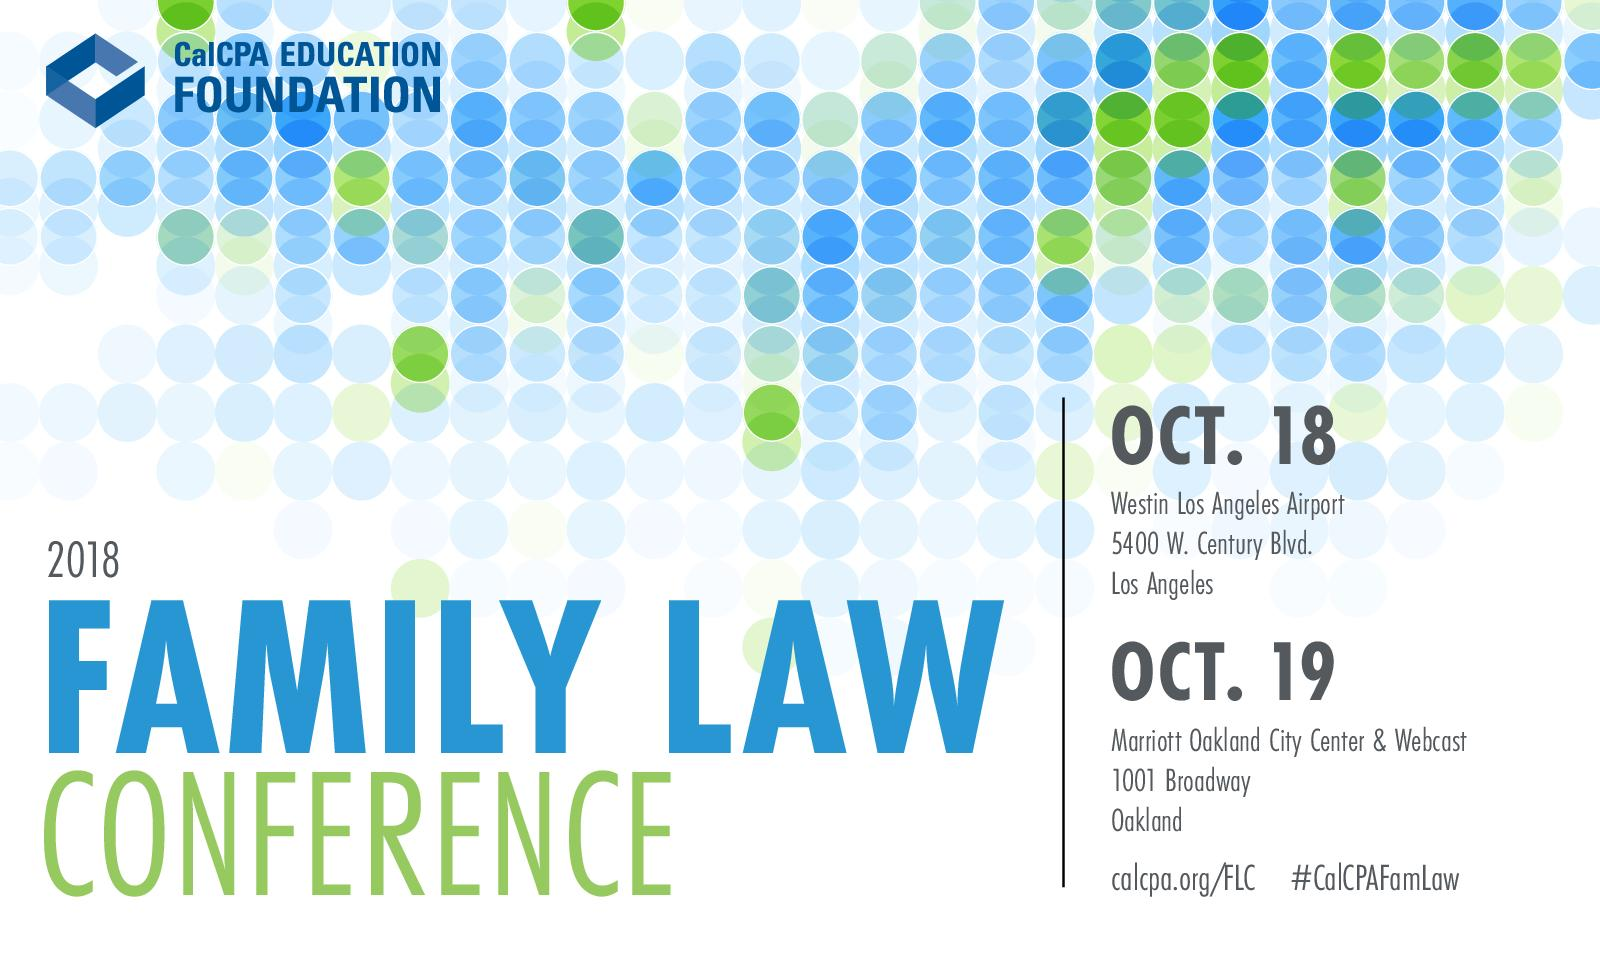 Calaméo - Family Law Conference 2018